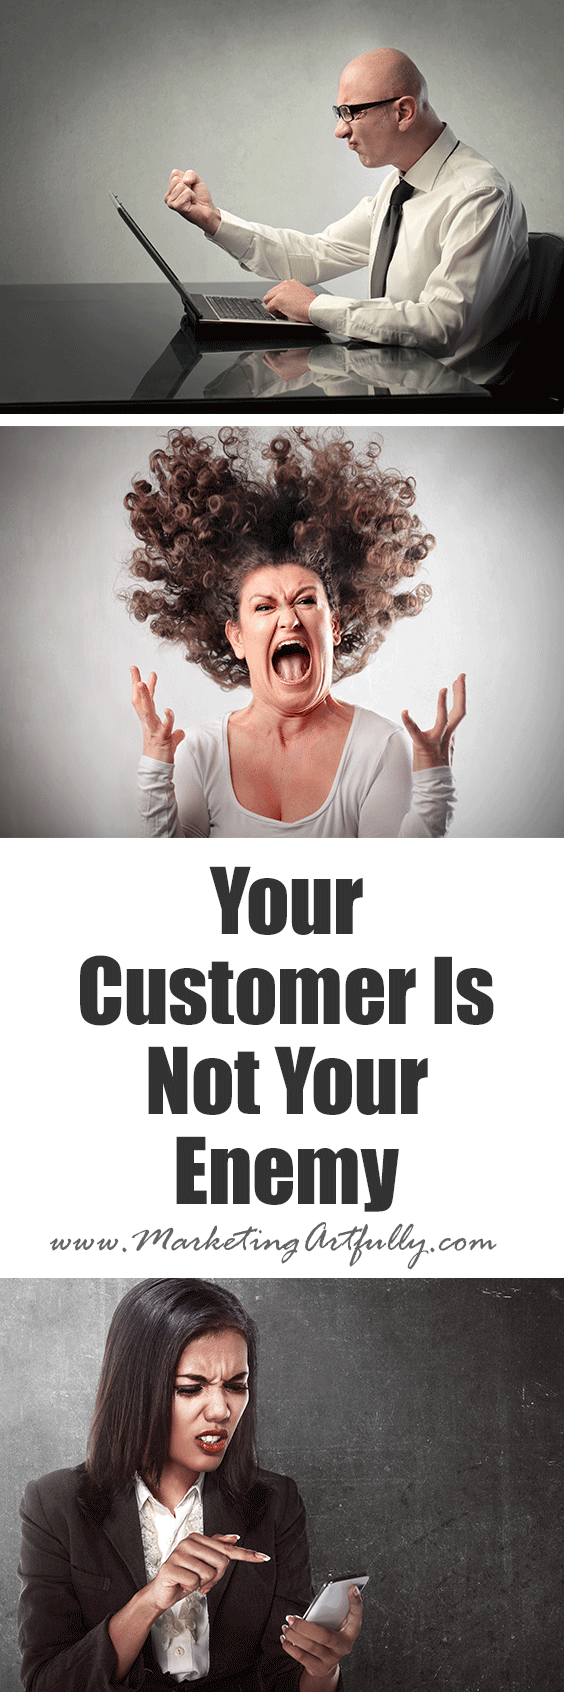 Your Customer Is Not Your Enemy | If you come from a place of wanting to please your customers and give them a great buying experience, then you are probably going to have less a-hole customers. Just my opinion.